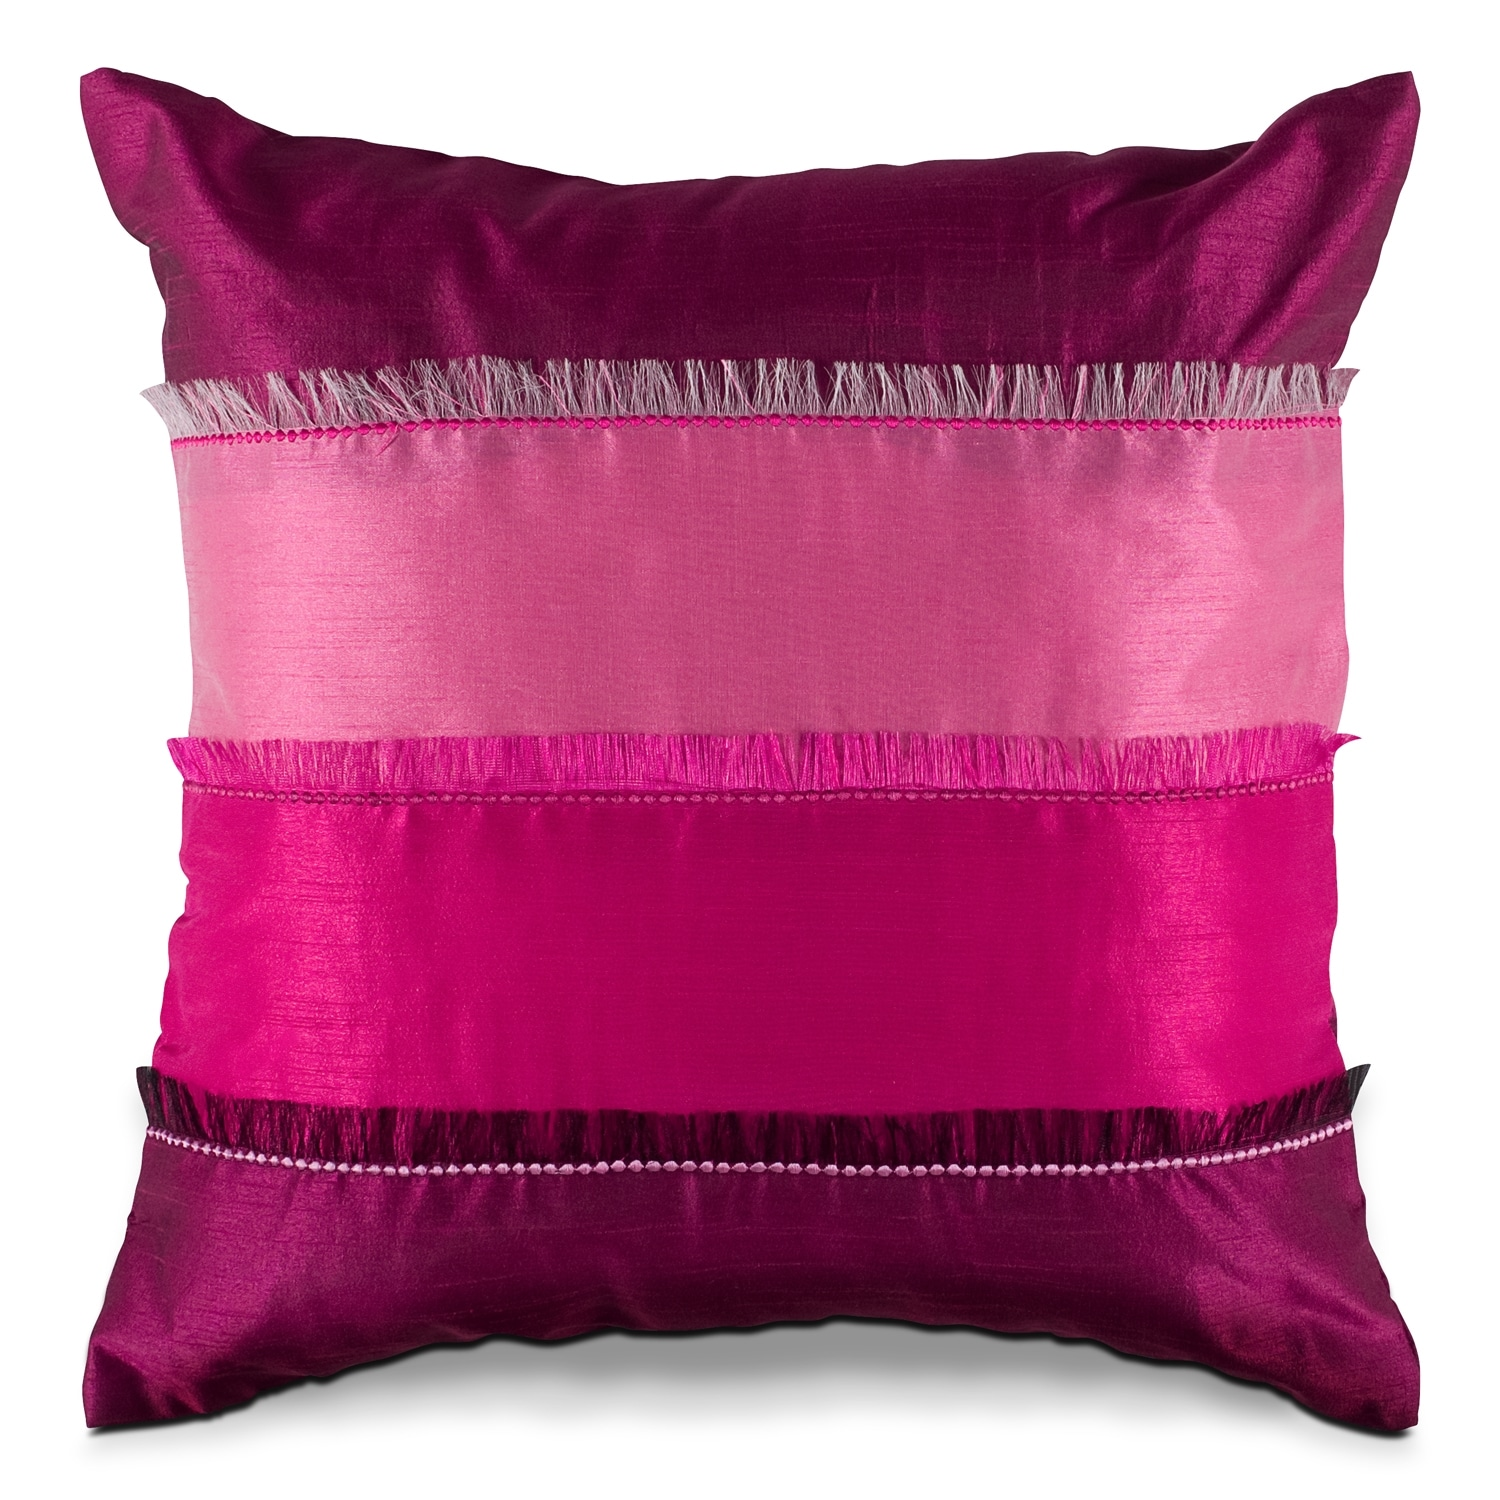 Amour Pink Decorative Pillow